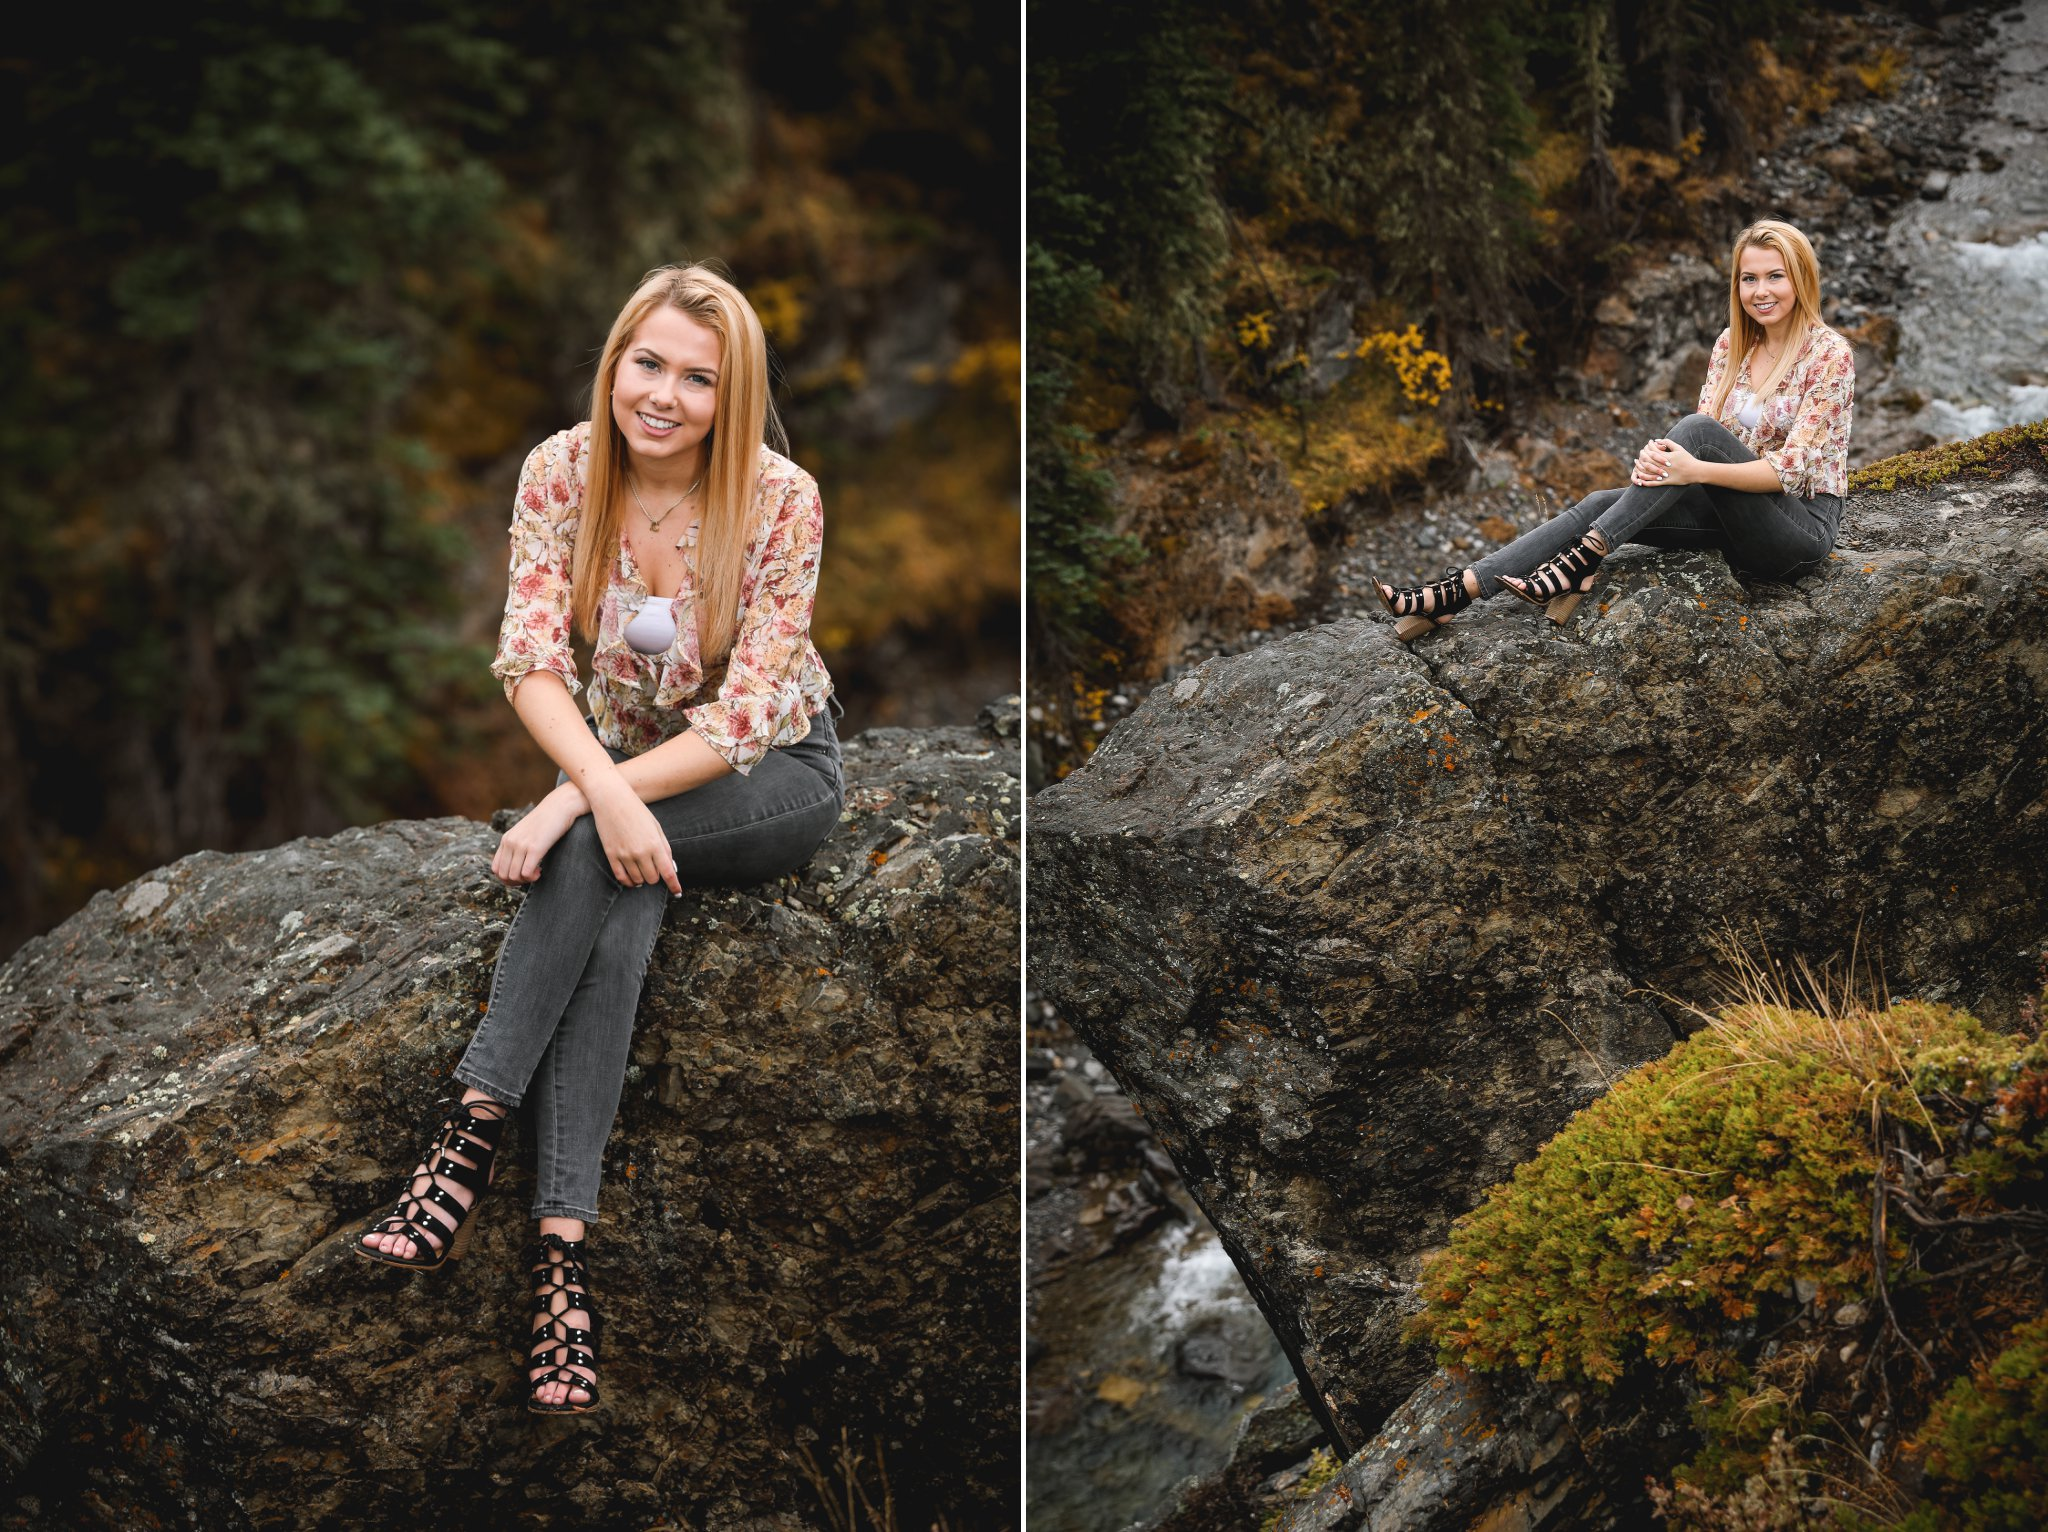 AshleyDaphnePhotography Calgary Photographer Wedding Family Senior Portraits Rocky Mountains Sheep River Falls Autumn Fall_0006.jpg